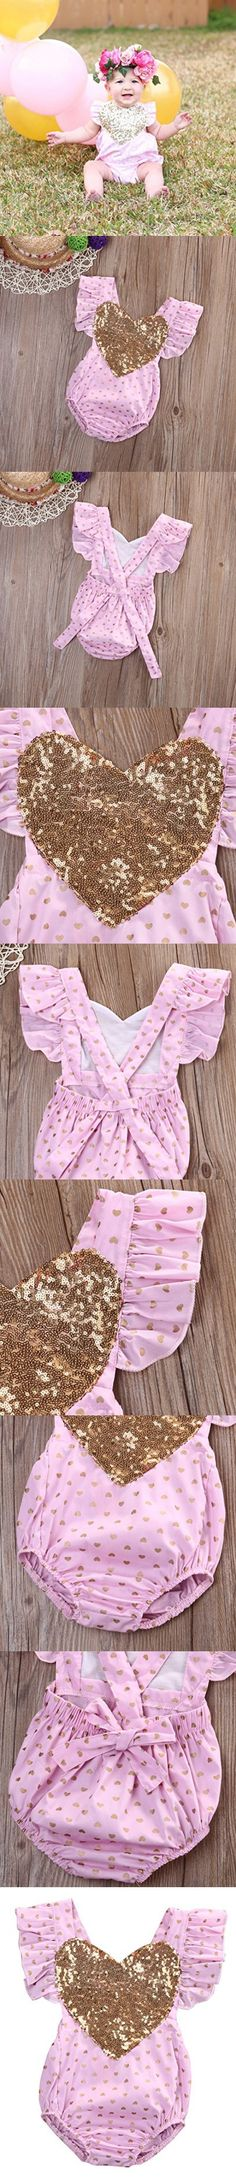 Baby Girl Gold Heart Print Bodysuit Romper Jumpsuit Outfits Playsuit Clothes (0-6months, Pink)